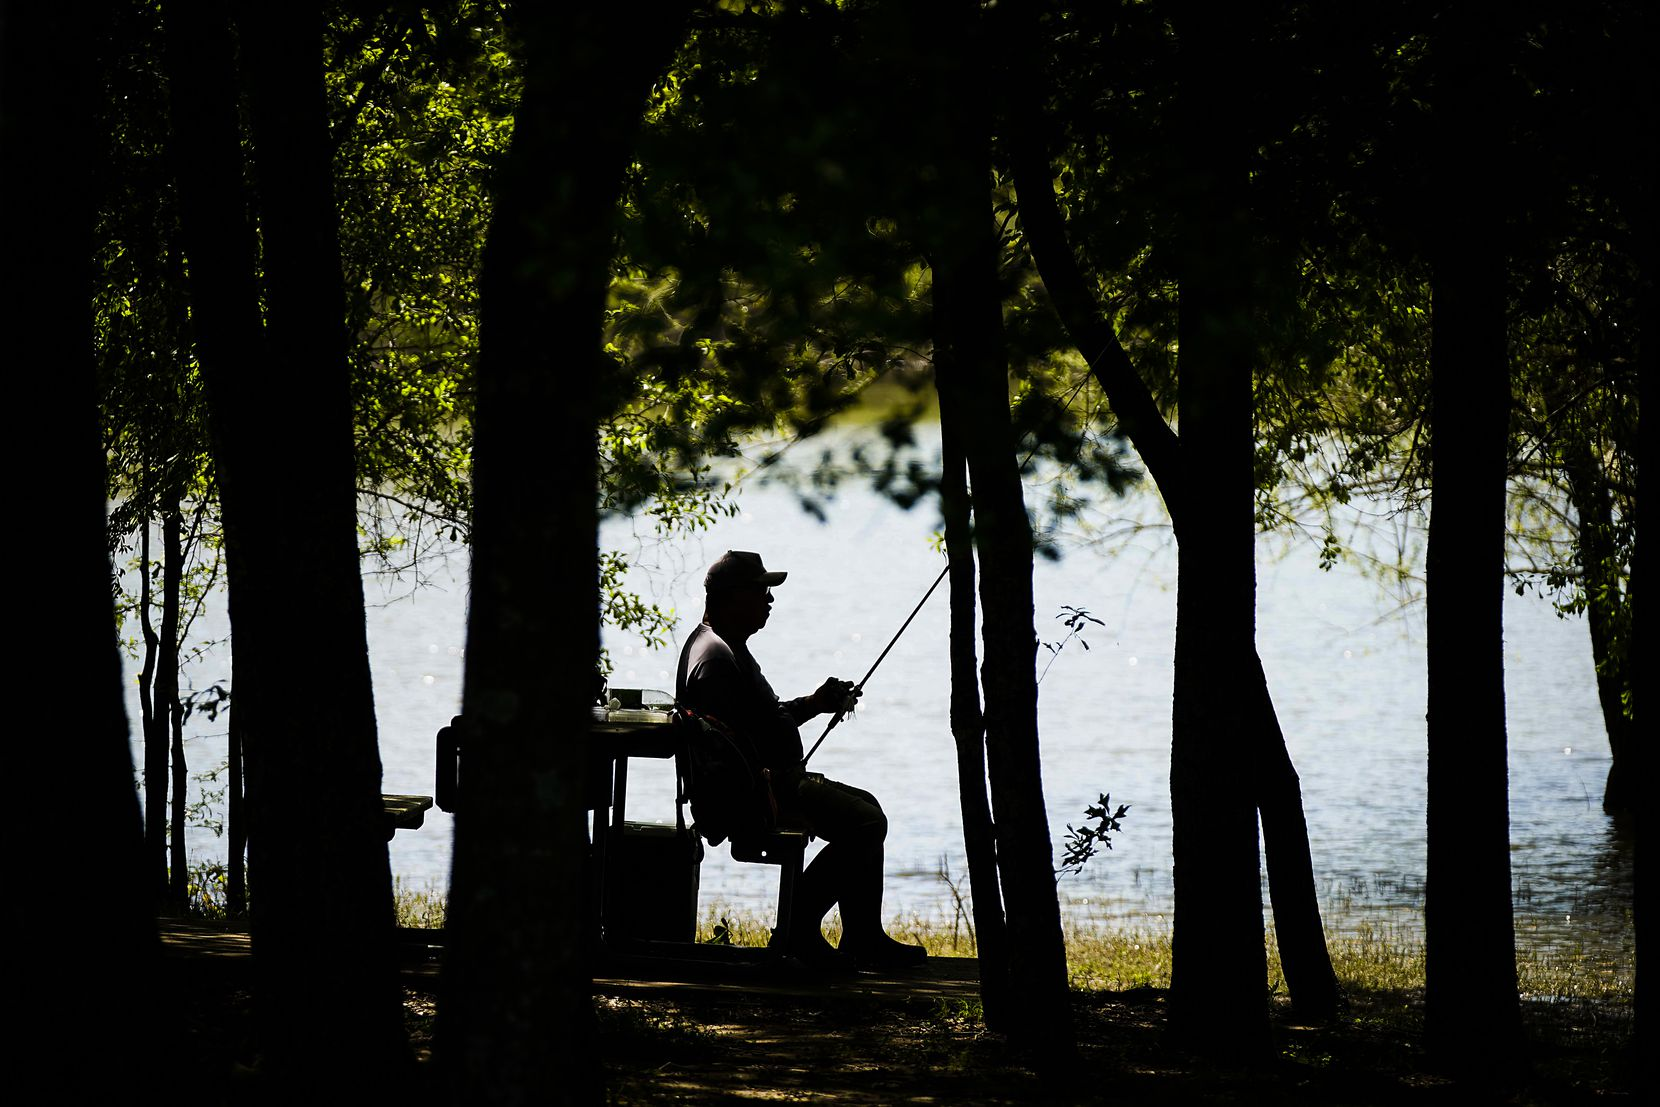 """Rudy Sanchez of Dallas sat in the shade to work on his gear while fishing at Lake Tawakoni State Park on April 7, 2020, in Wills Point. State parks temporarily closed due to the COVID-19 pandemic. Sanchez, who fishes at the park a few times a week, said he was ready to pack up and head home from the day when he got a text message announcing the closures, but he said, """"I'm staying!"""" Sanchez said he wasn't sure where he would fish starting the next day. """"That's the only place I go, to state parks,"""" he said. """"I may have to just go to Galveston or something."""""""